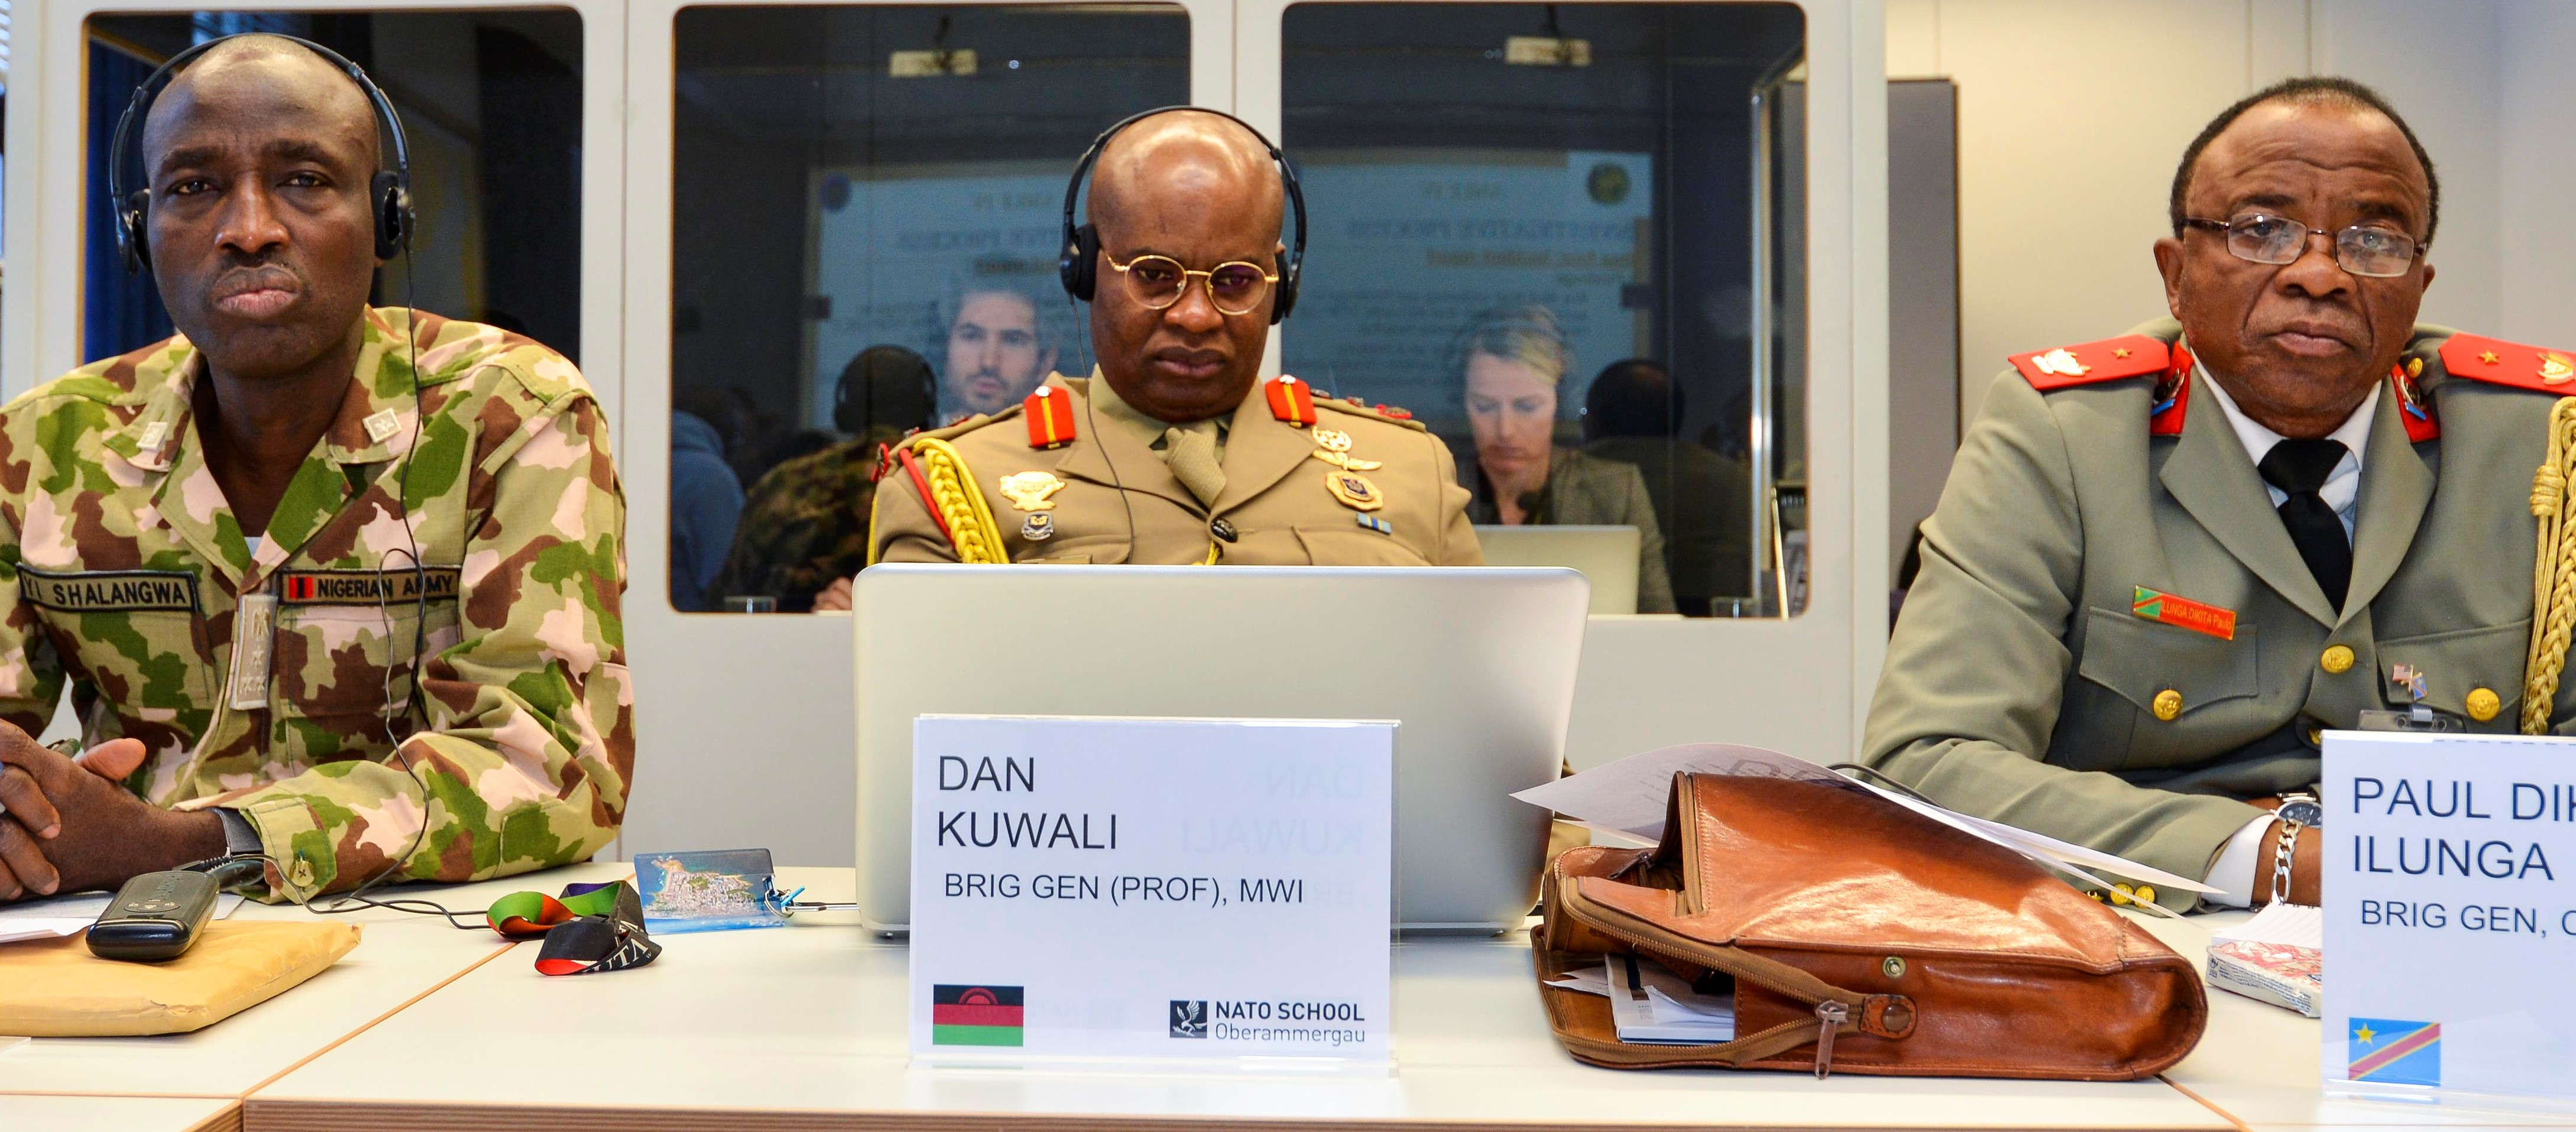 Brig. Gen. Yusuf Ibrahim Shalangwa of Nigeria, Brig. Gen. Dan Kuwali of Malawi and Brig. Gen. Paul Dikita Ilunga of the Democratic Republic of Congo listen to a presentation during the U.S. AFRICOM hosted annual Africa Military Law Forum, Oberammergau in Germany, March 1, 2018. (Photo by Cpl. Victor Leonard, NATO School Public Affairs/Released)